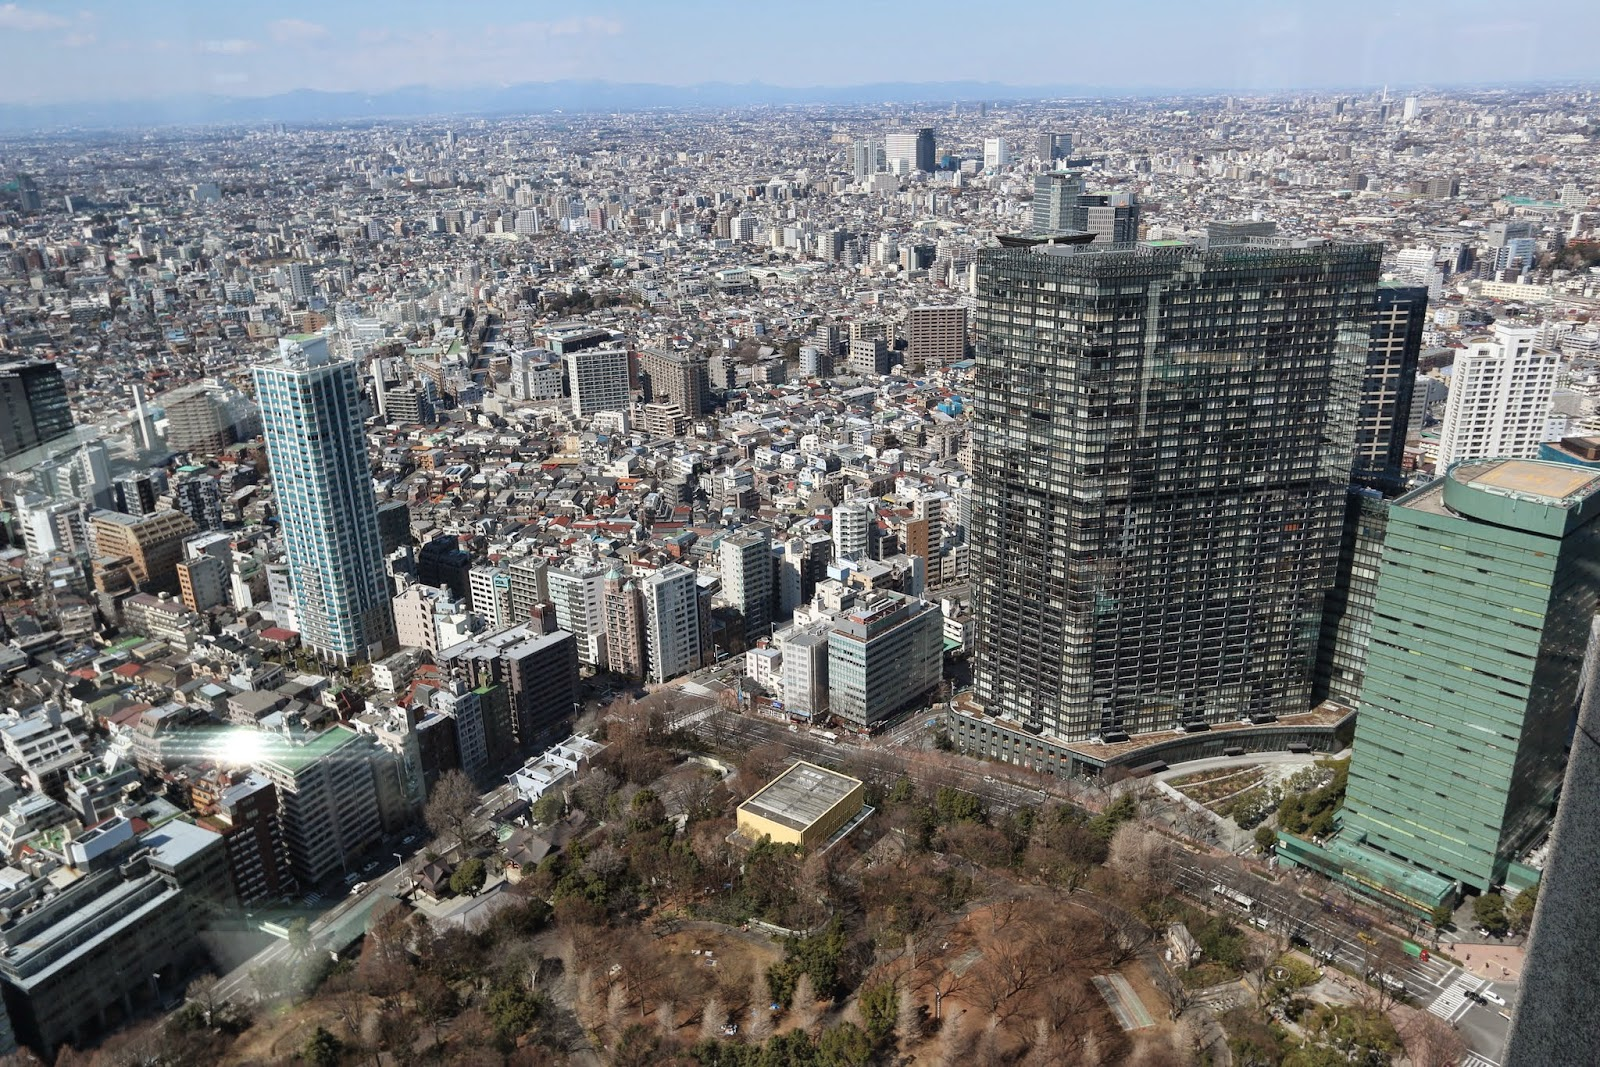 A compact and high density of Tokyo downtown from the observation deck at Tokyo Metropolitan Government Building in Shinjuku, Japan